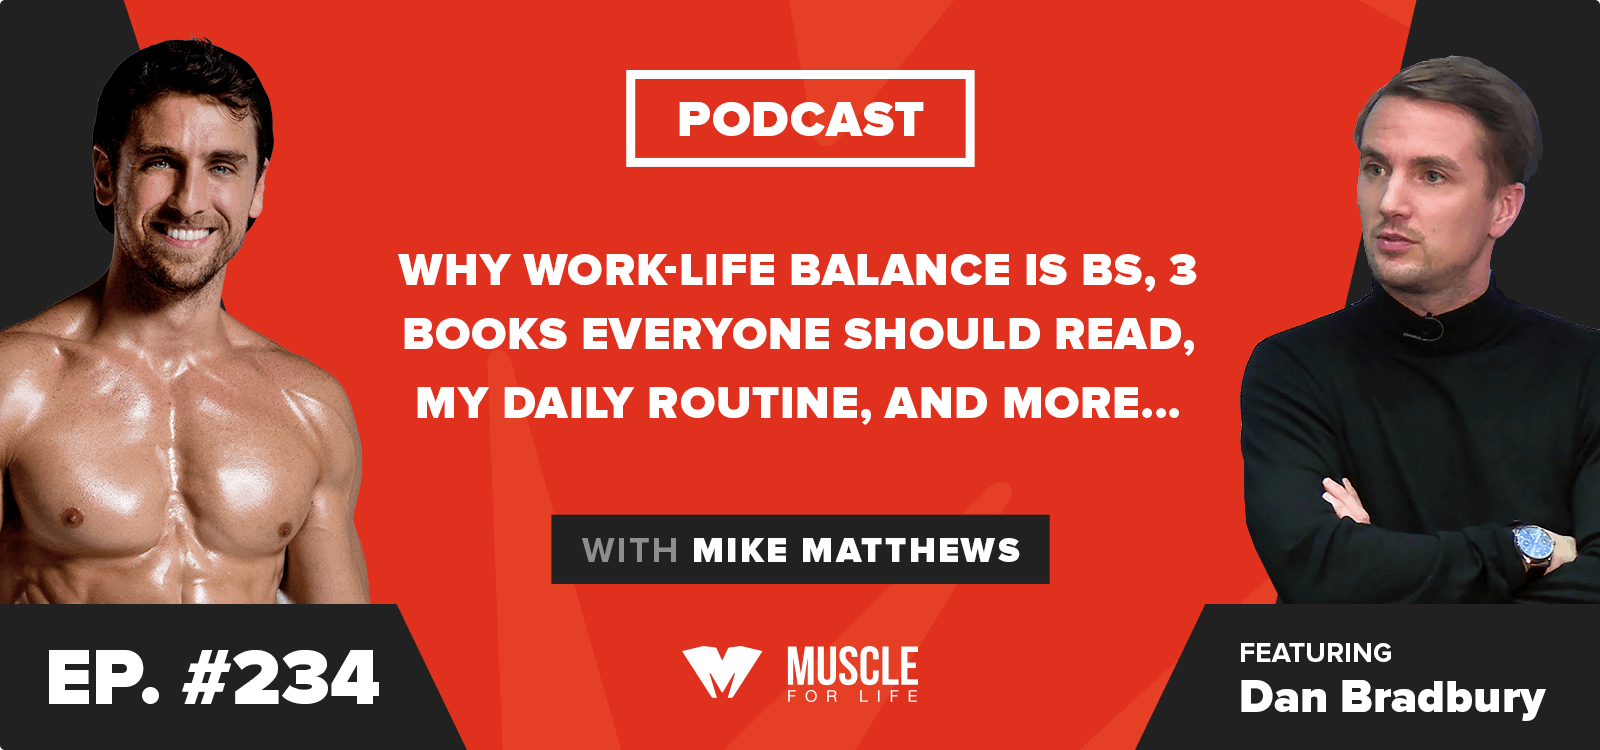 Why Work-Life Balance Is BS, 3 Books Everyone Should Read, My Daily Routine, and More…